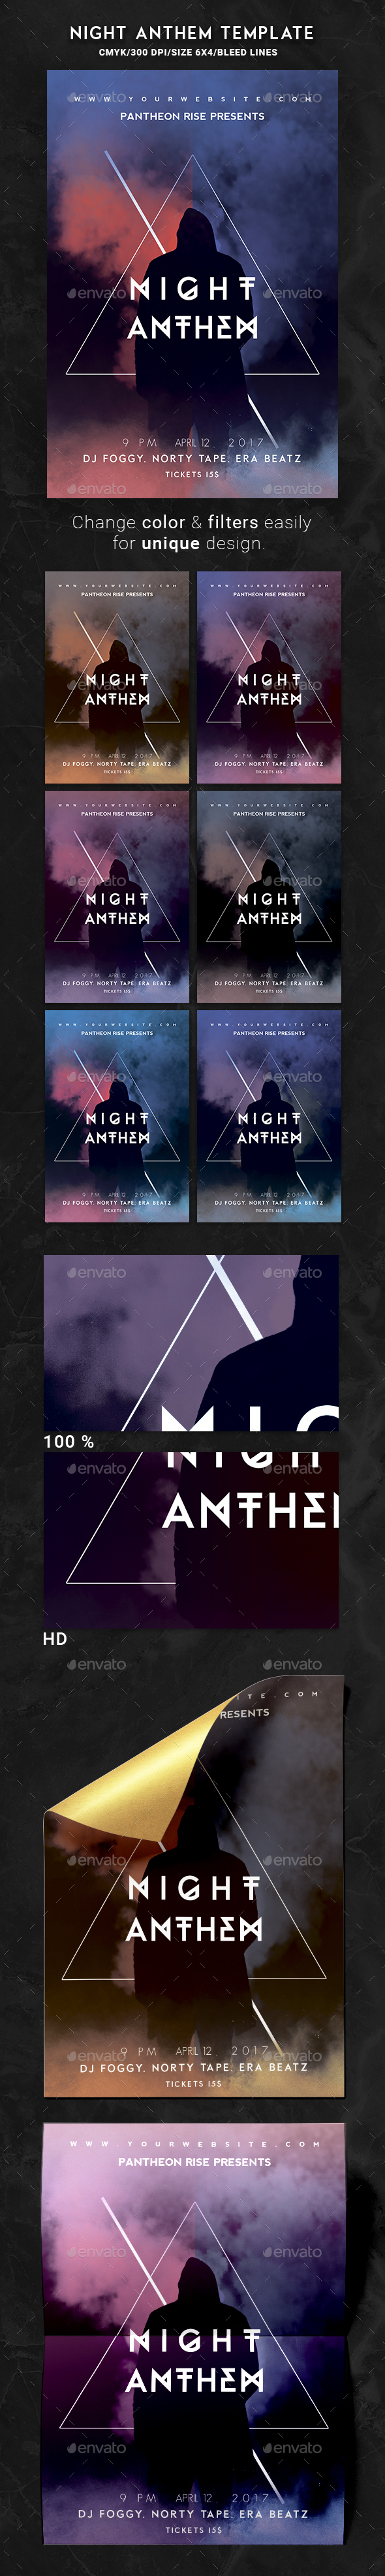 Night Anthem Flyer Template - Events Flyers